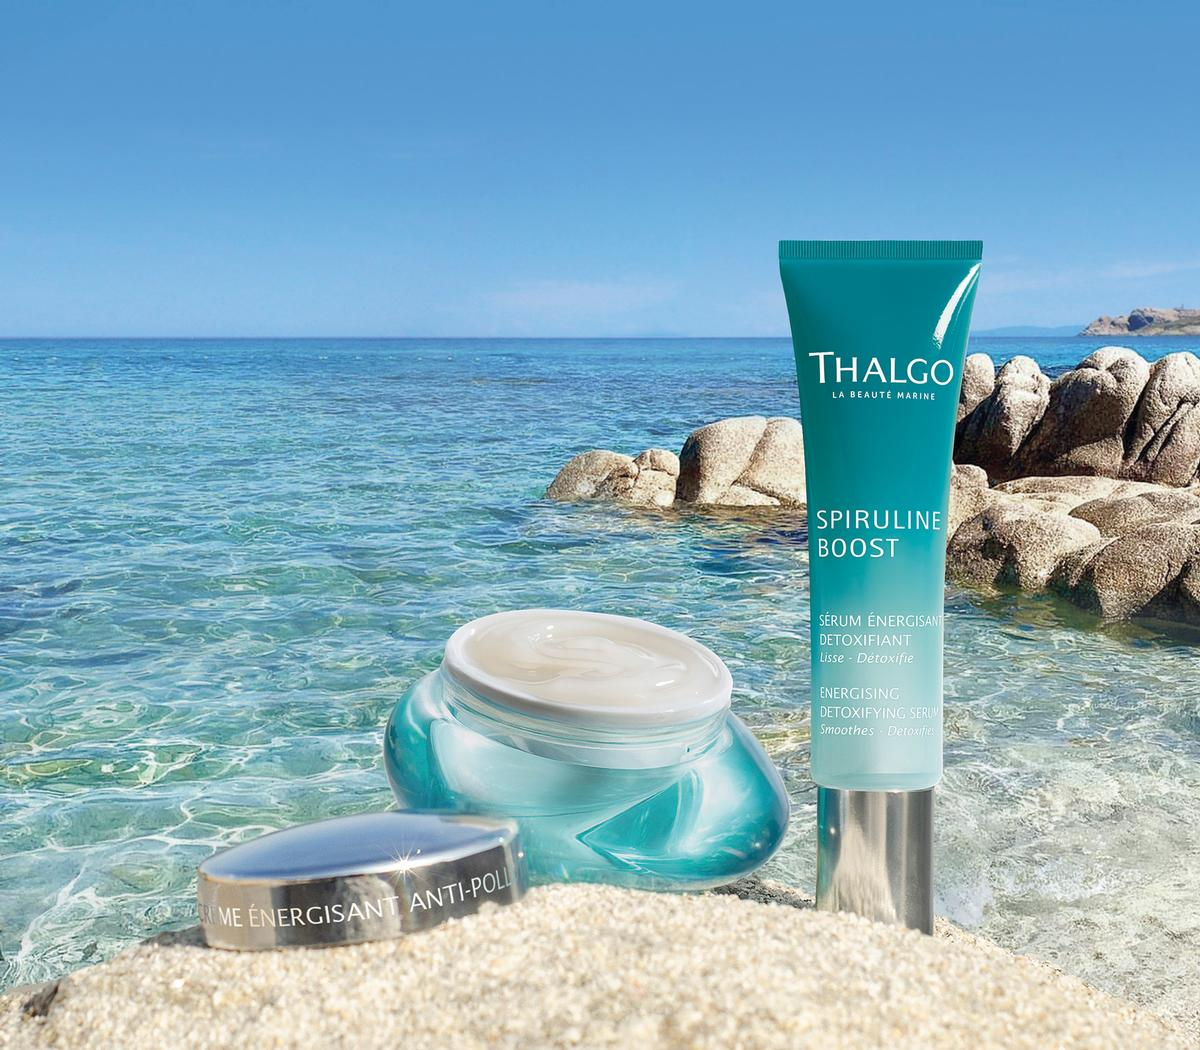 The collection features a detoxifying serum, anti-pollution gel-cream and an energising eye gel / Thalgo